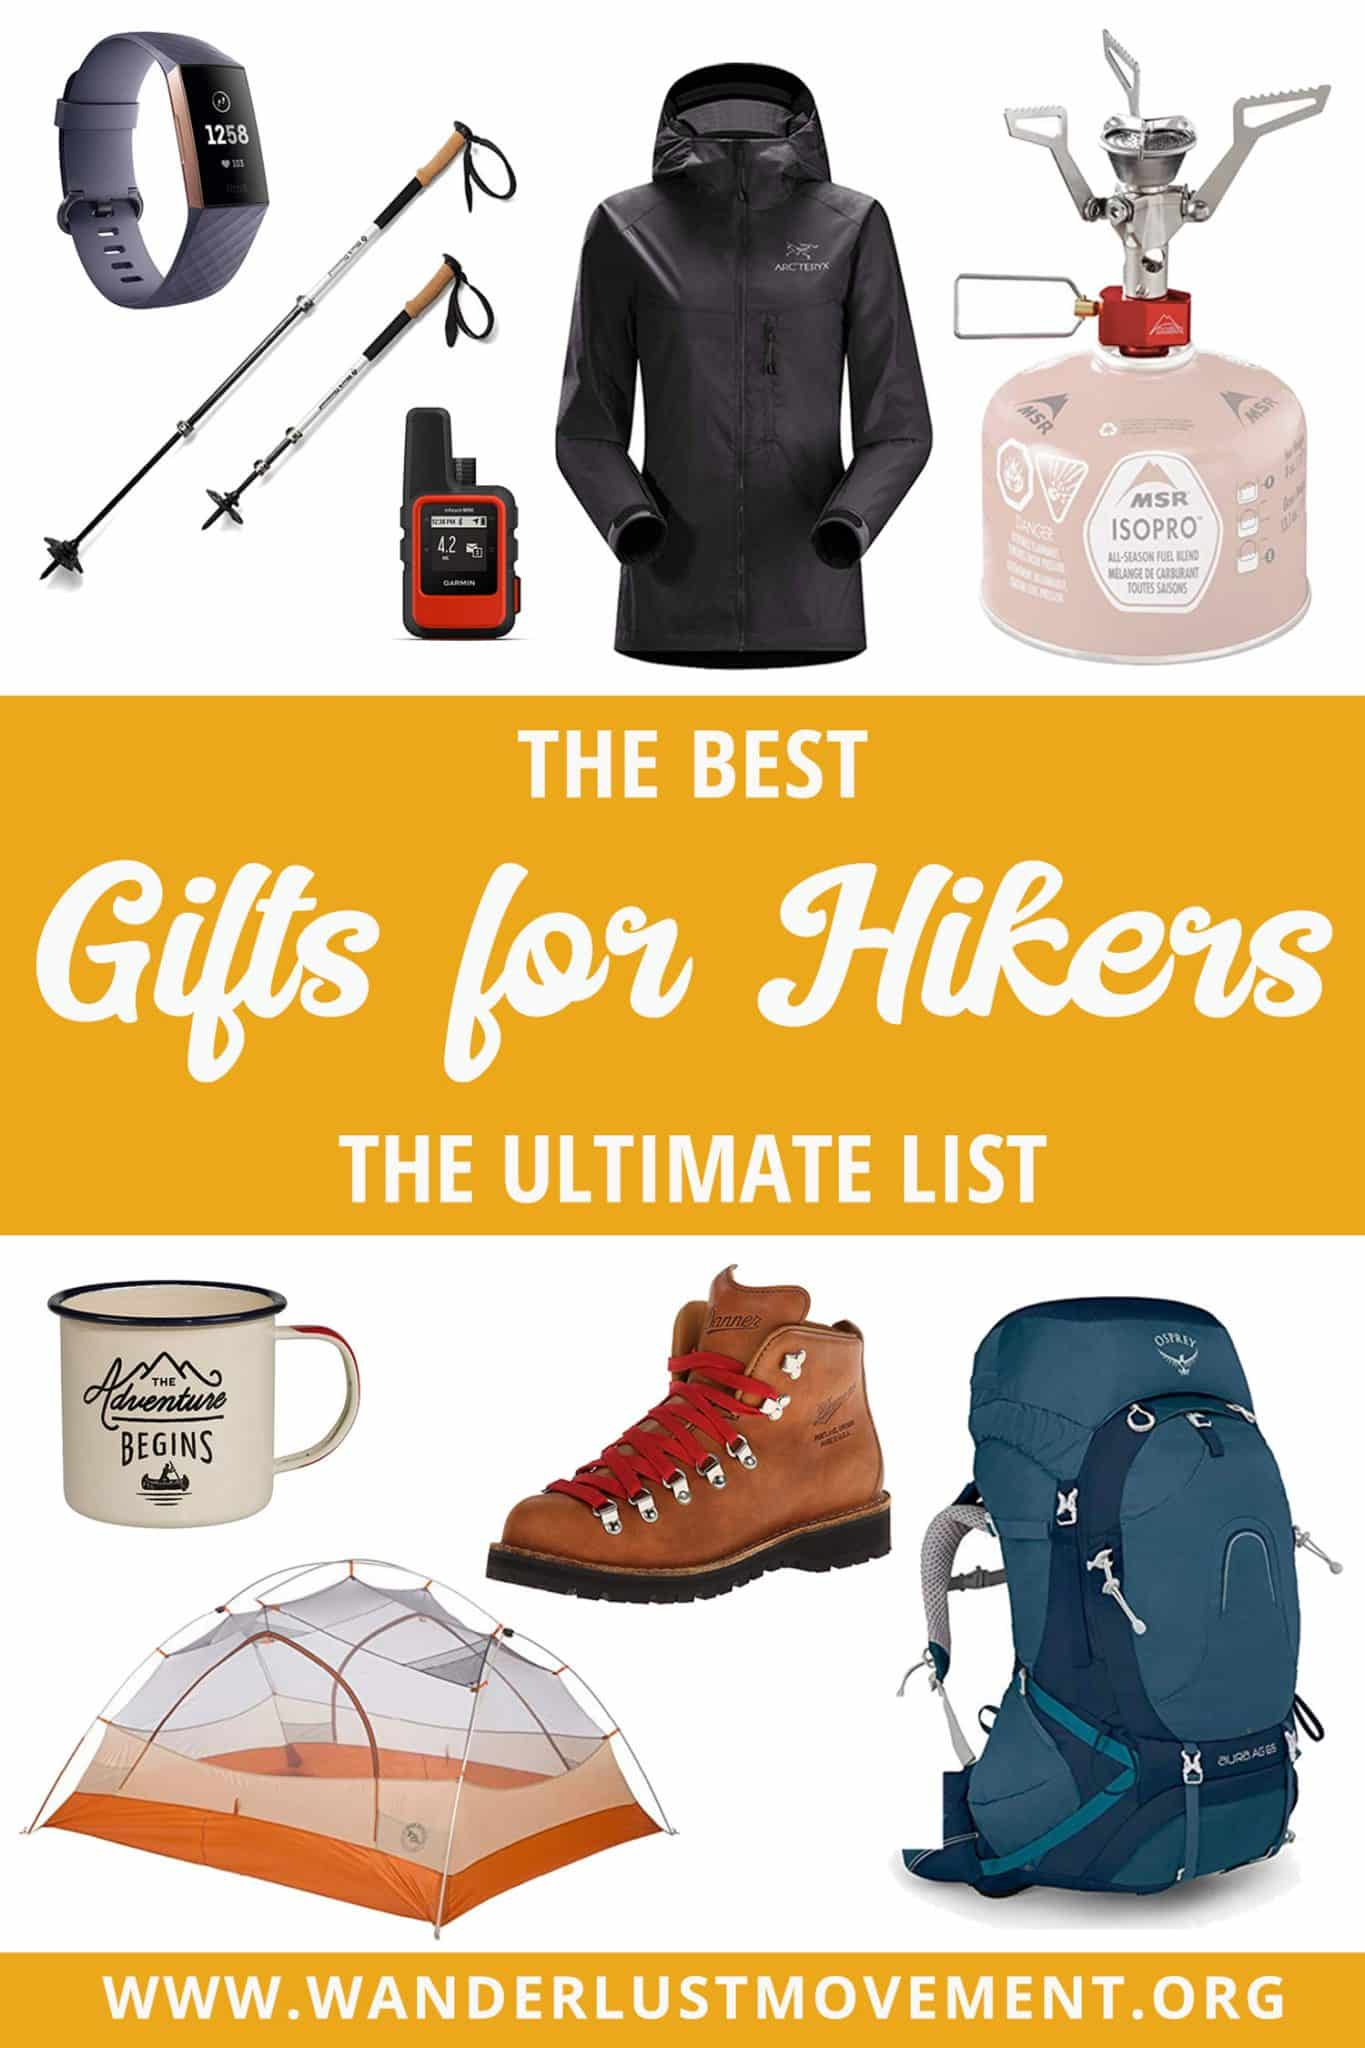 The Best Gifts for Hikers: The Ultimate List for Every Budget